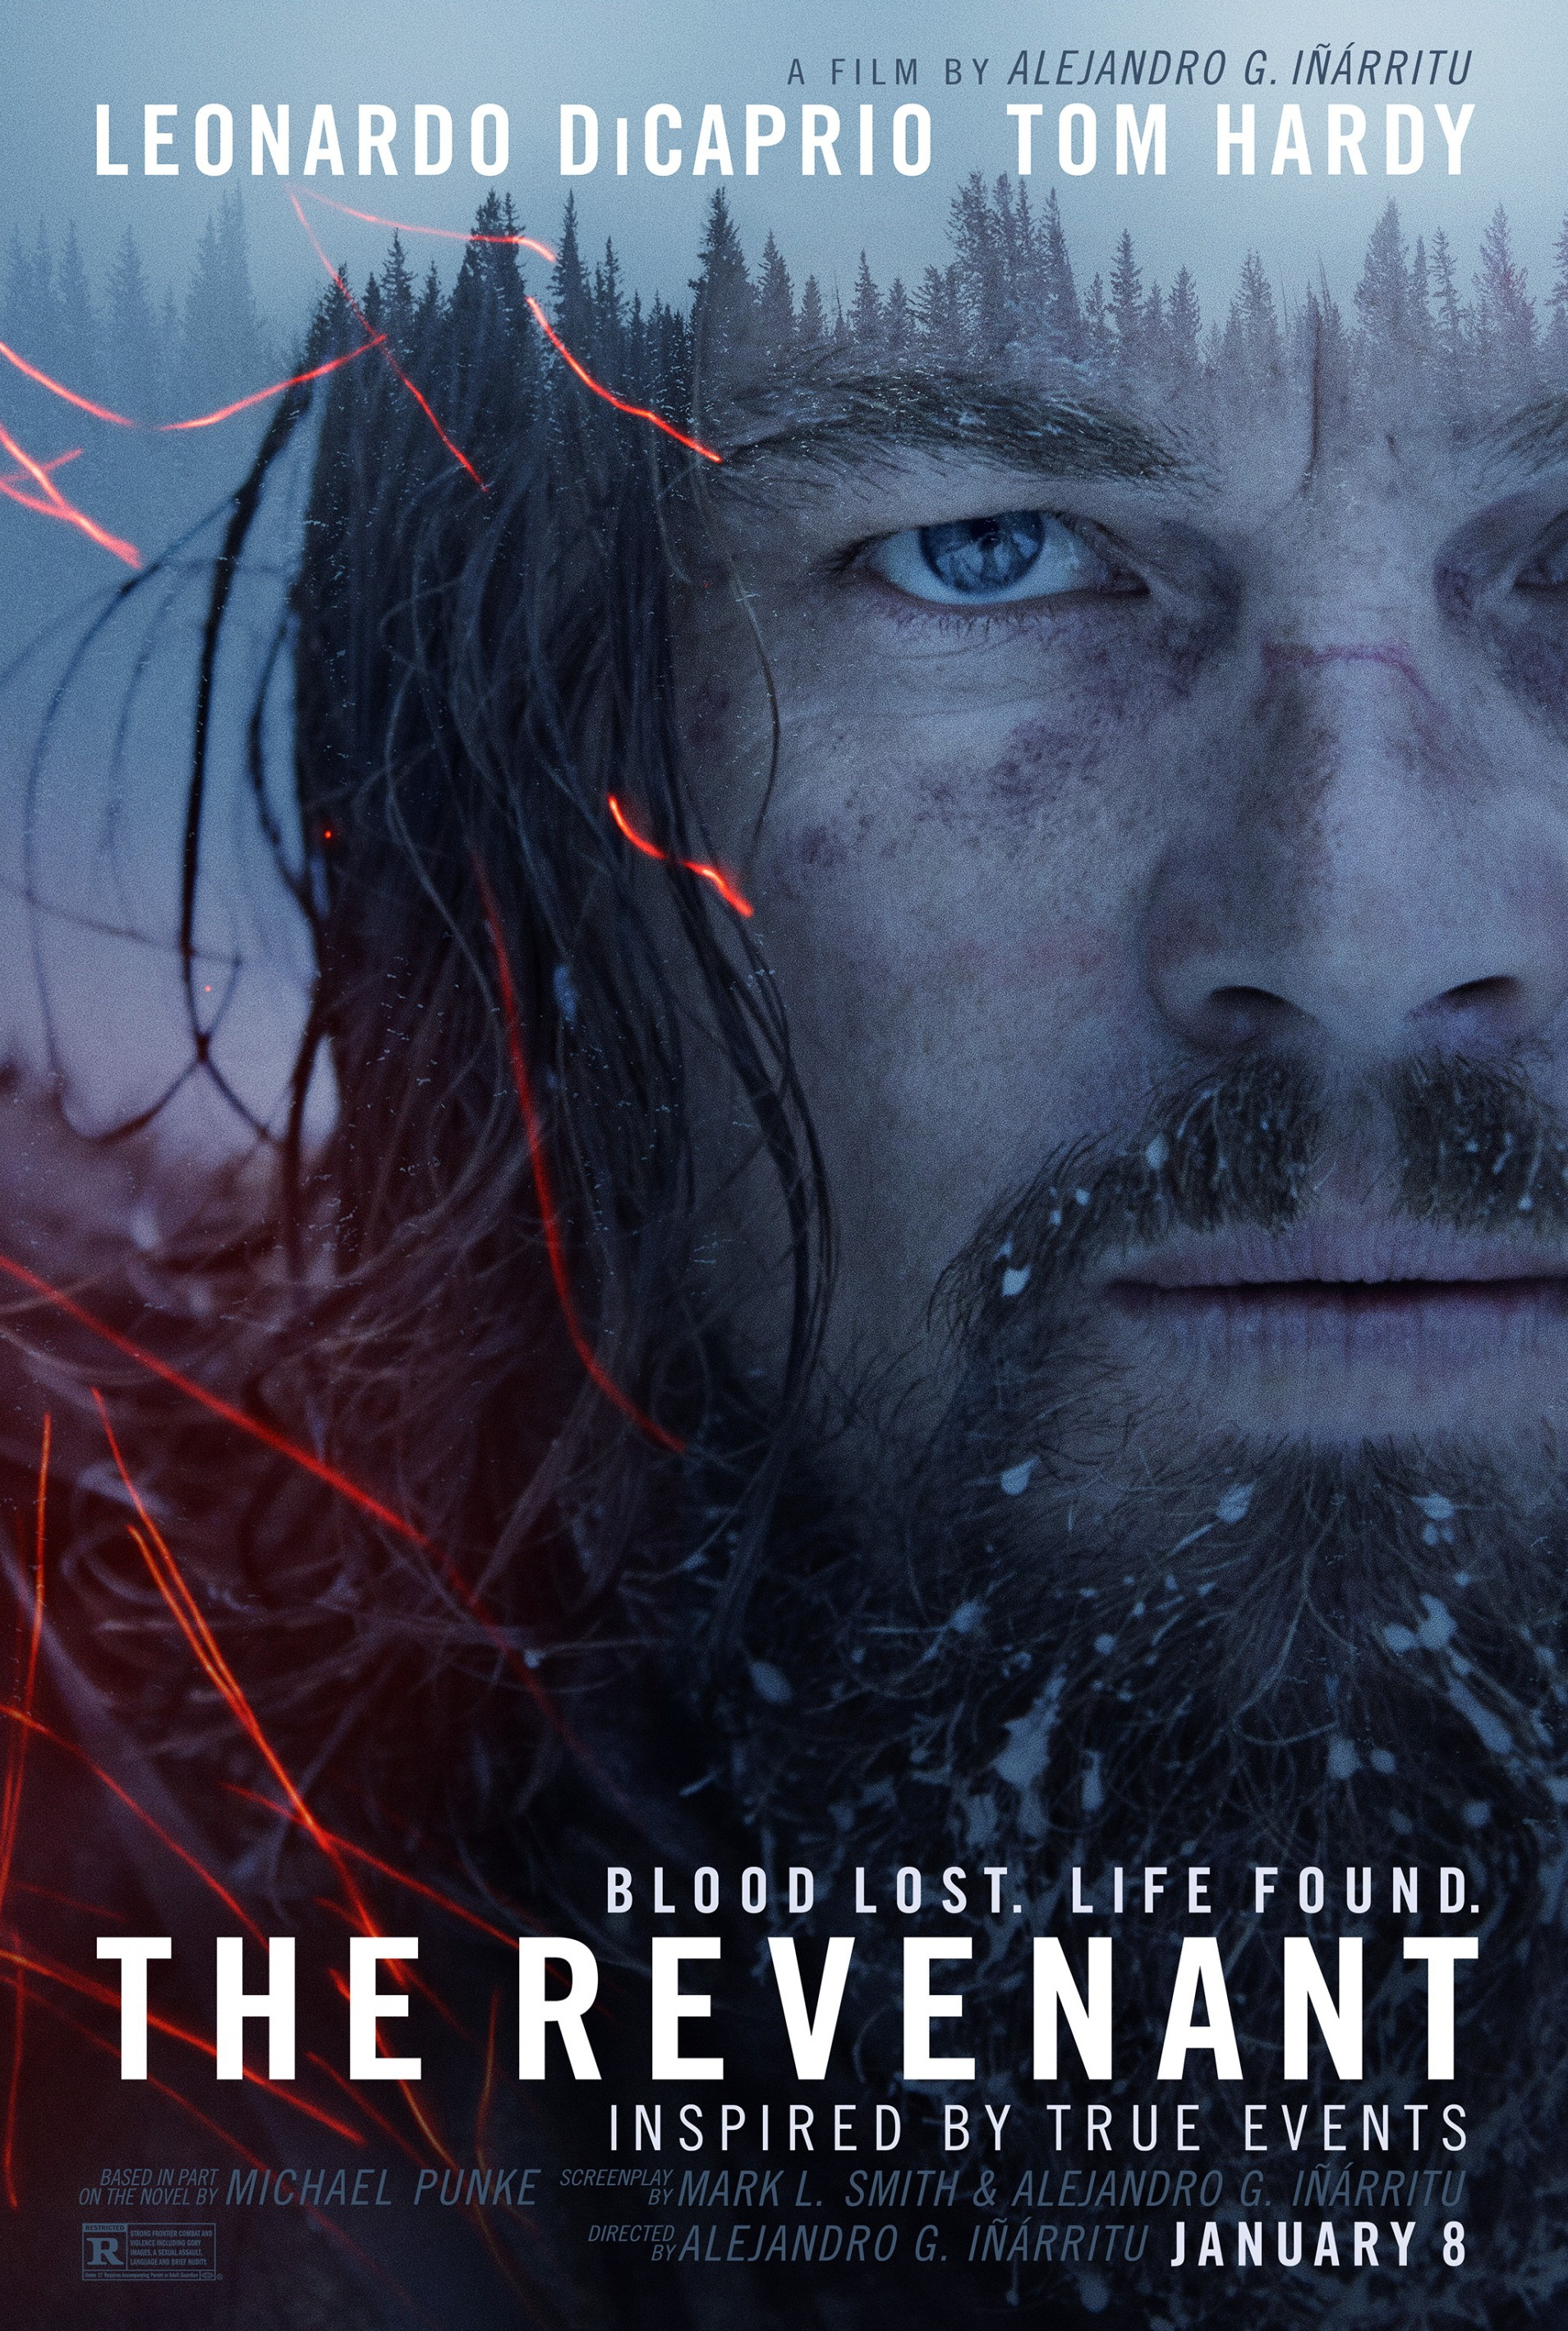 Image result for the revenant movie poster""